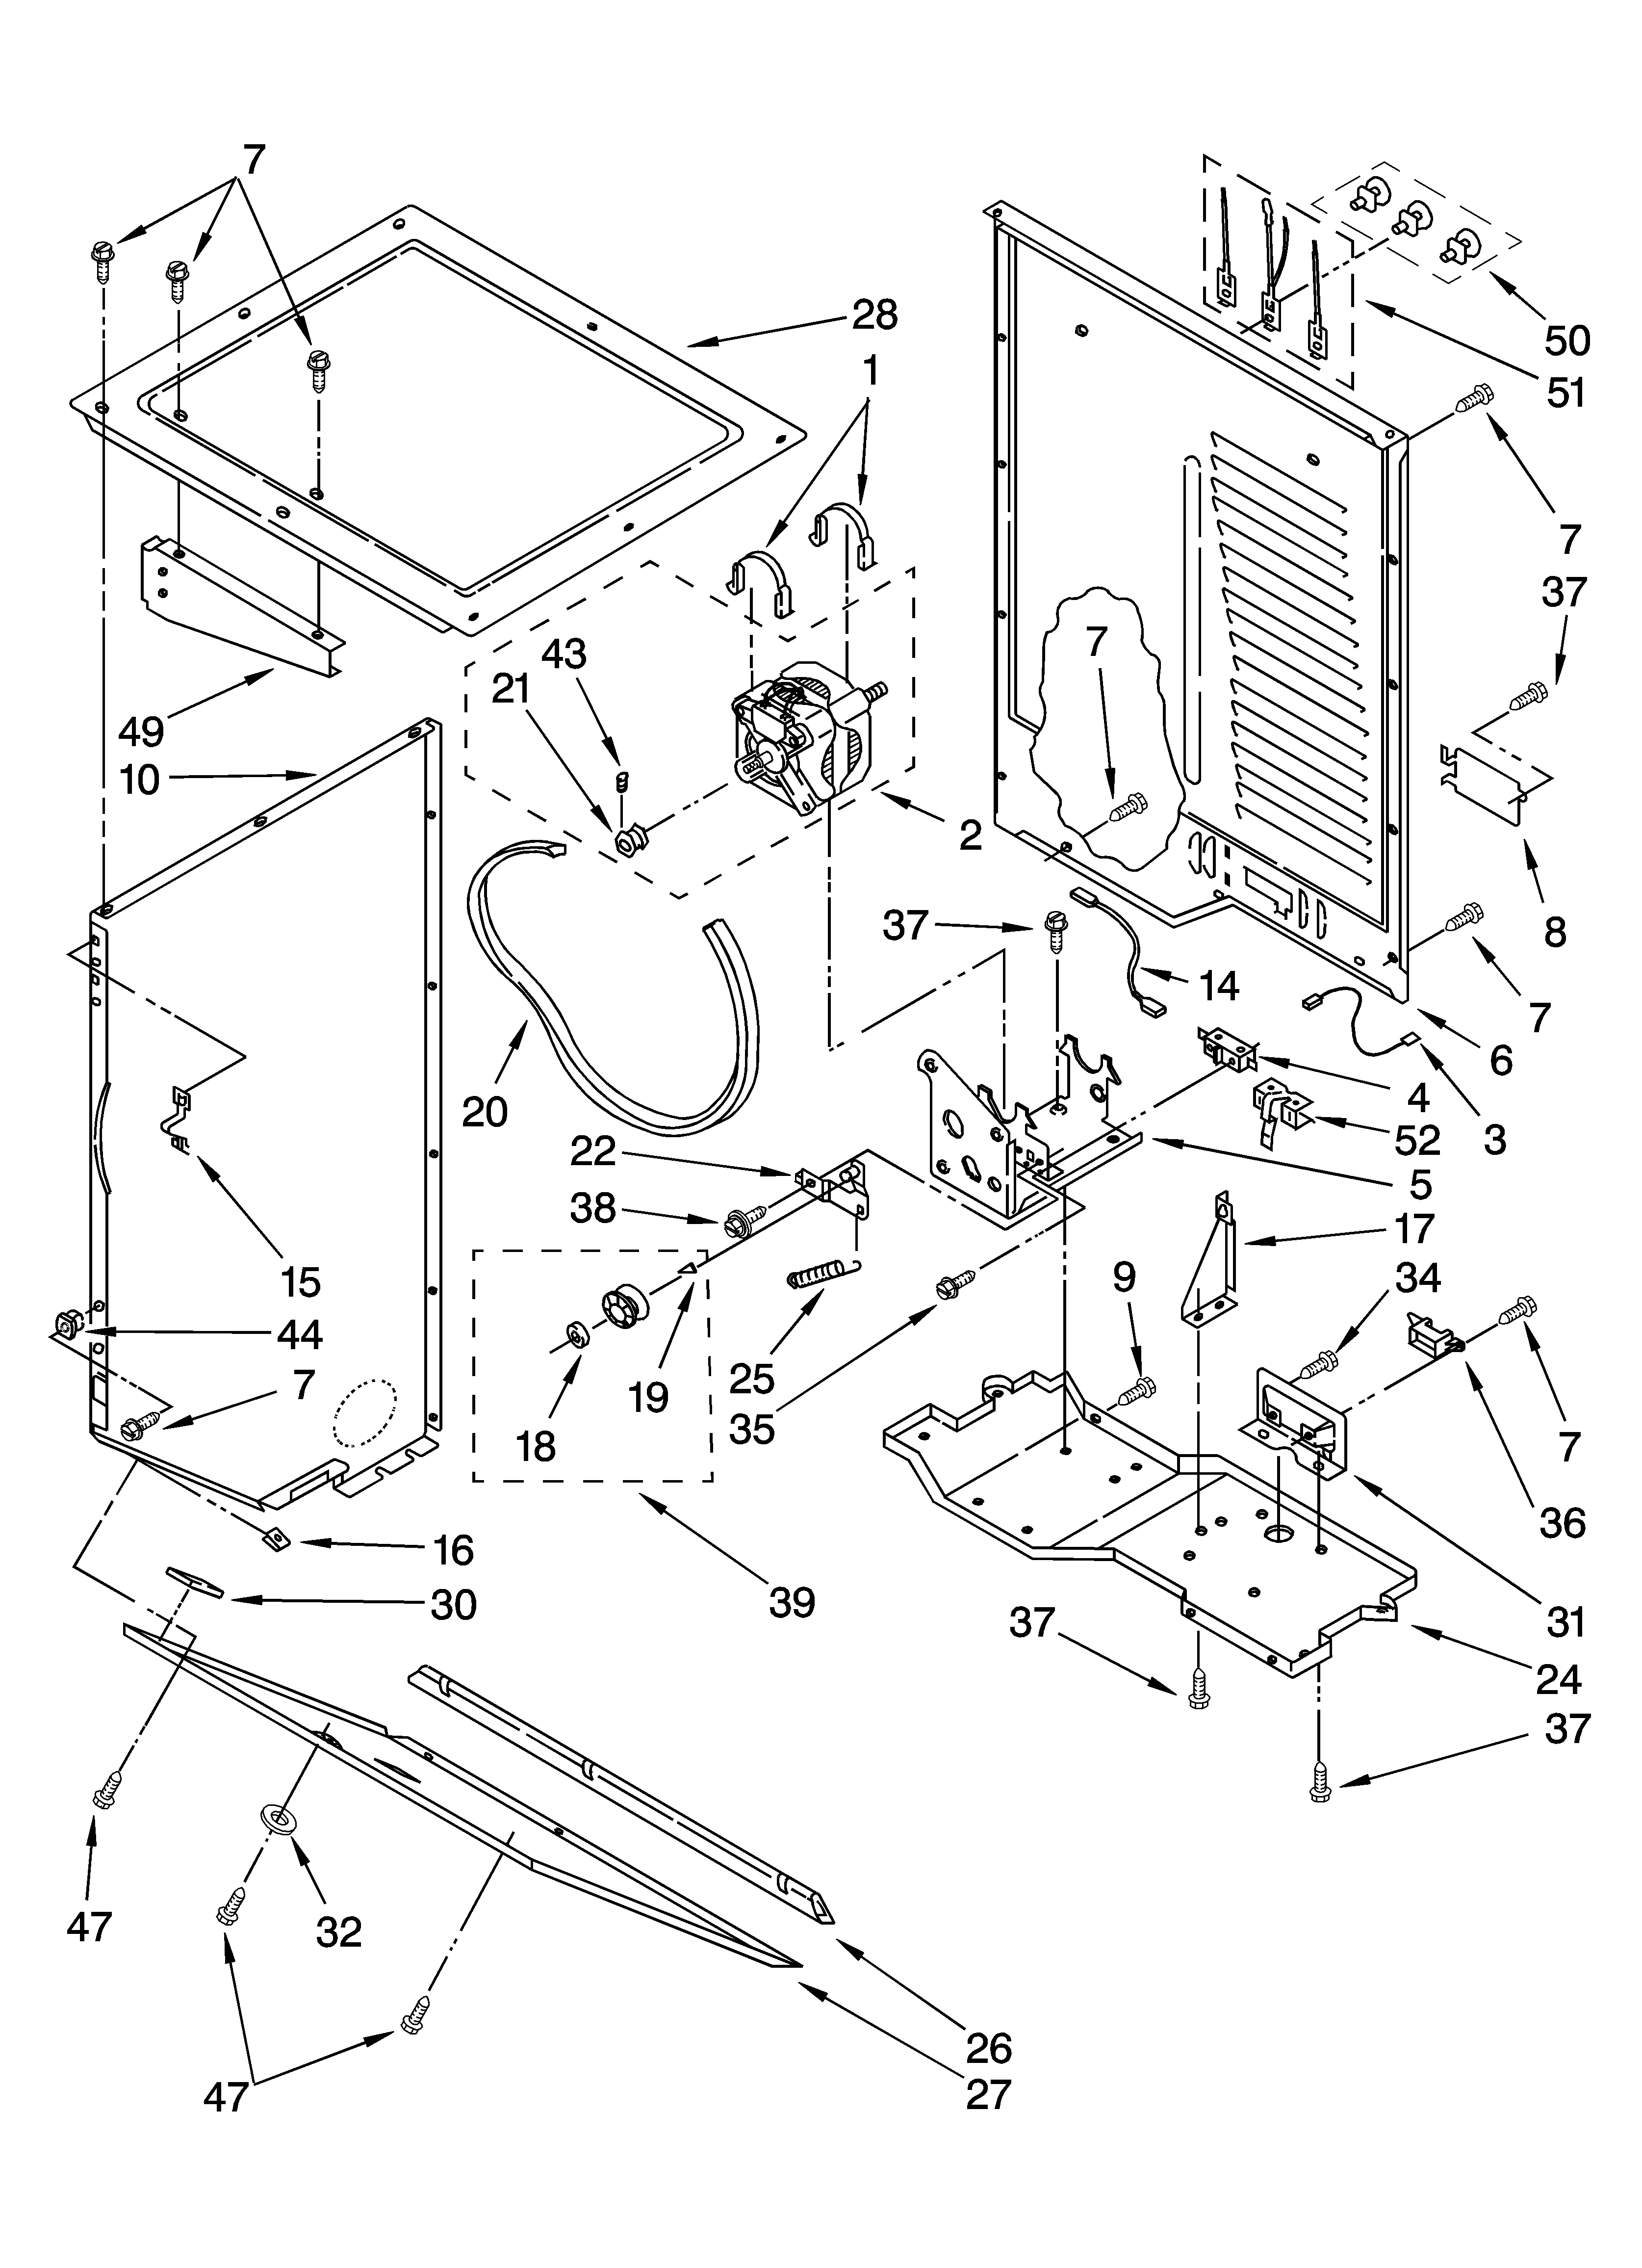 Whirlpool LTE6234DQ3 dryer cabinet and motor parts diagram